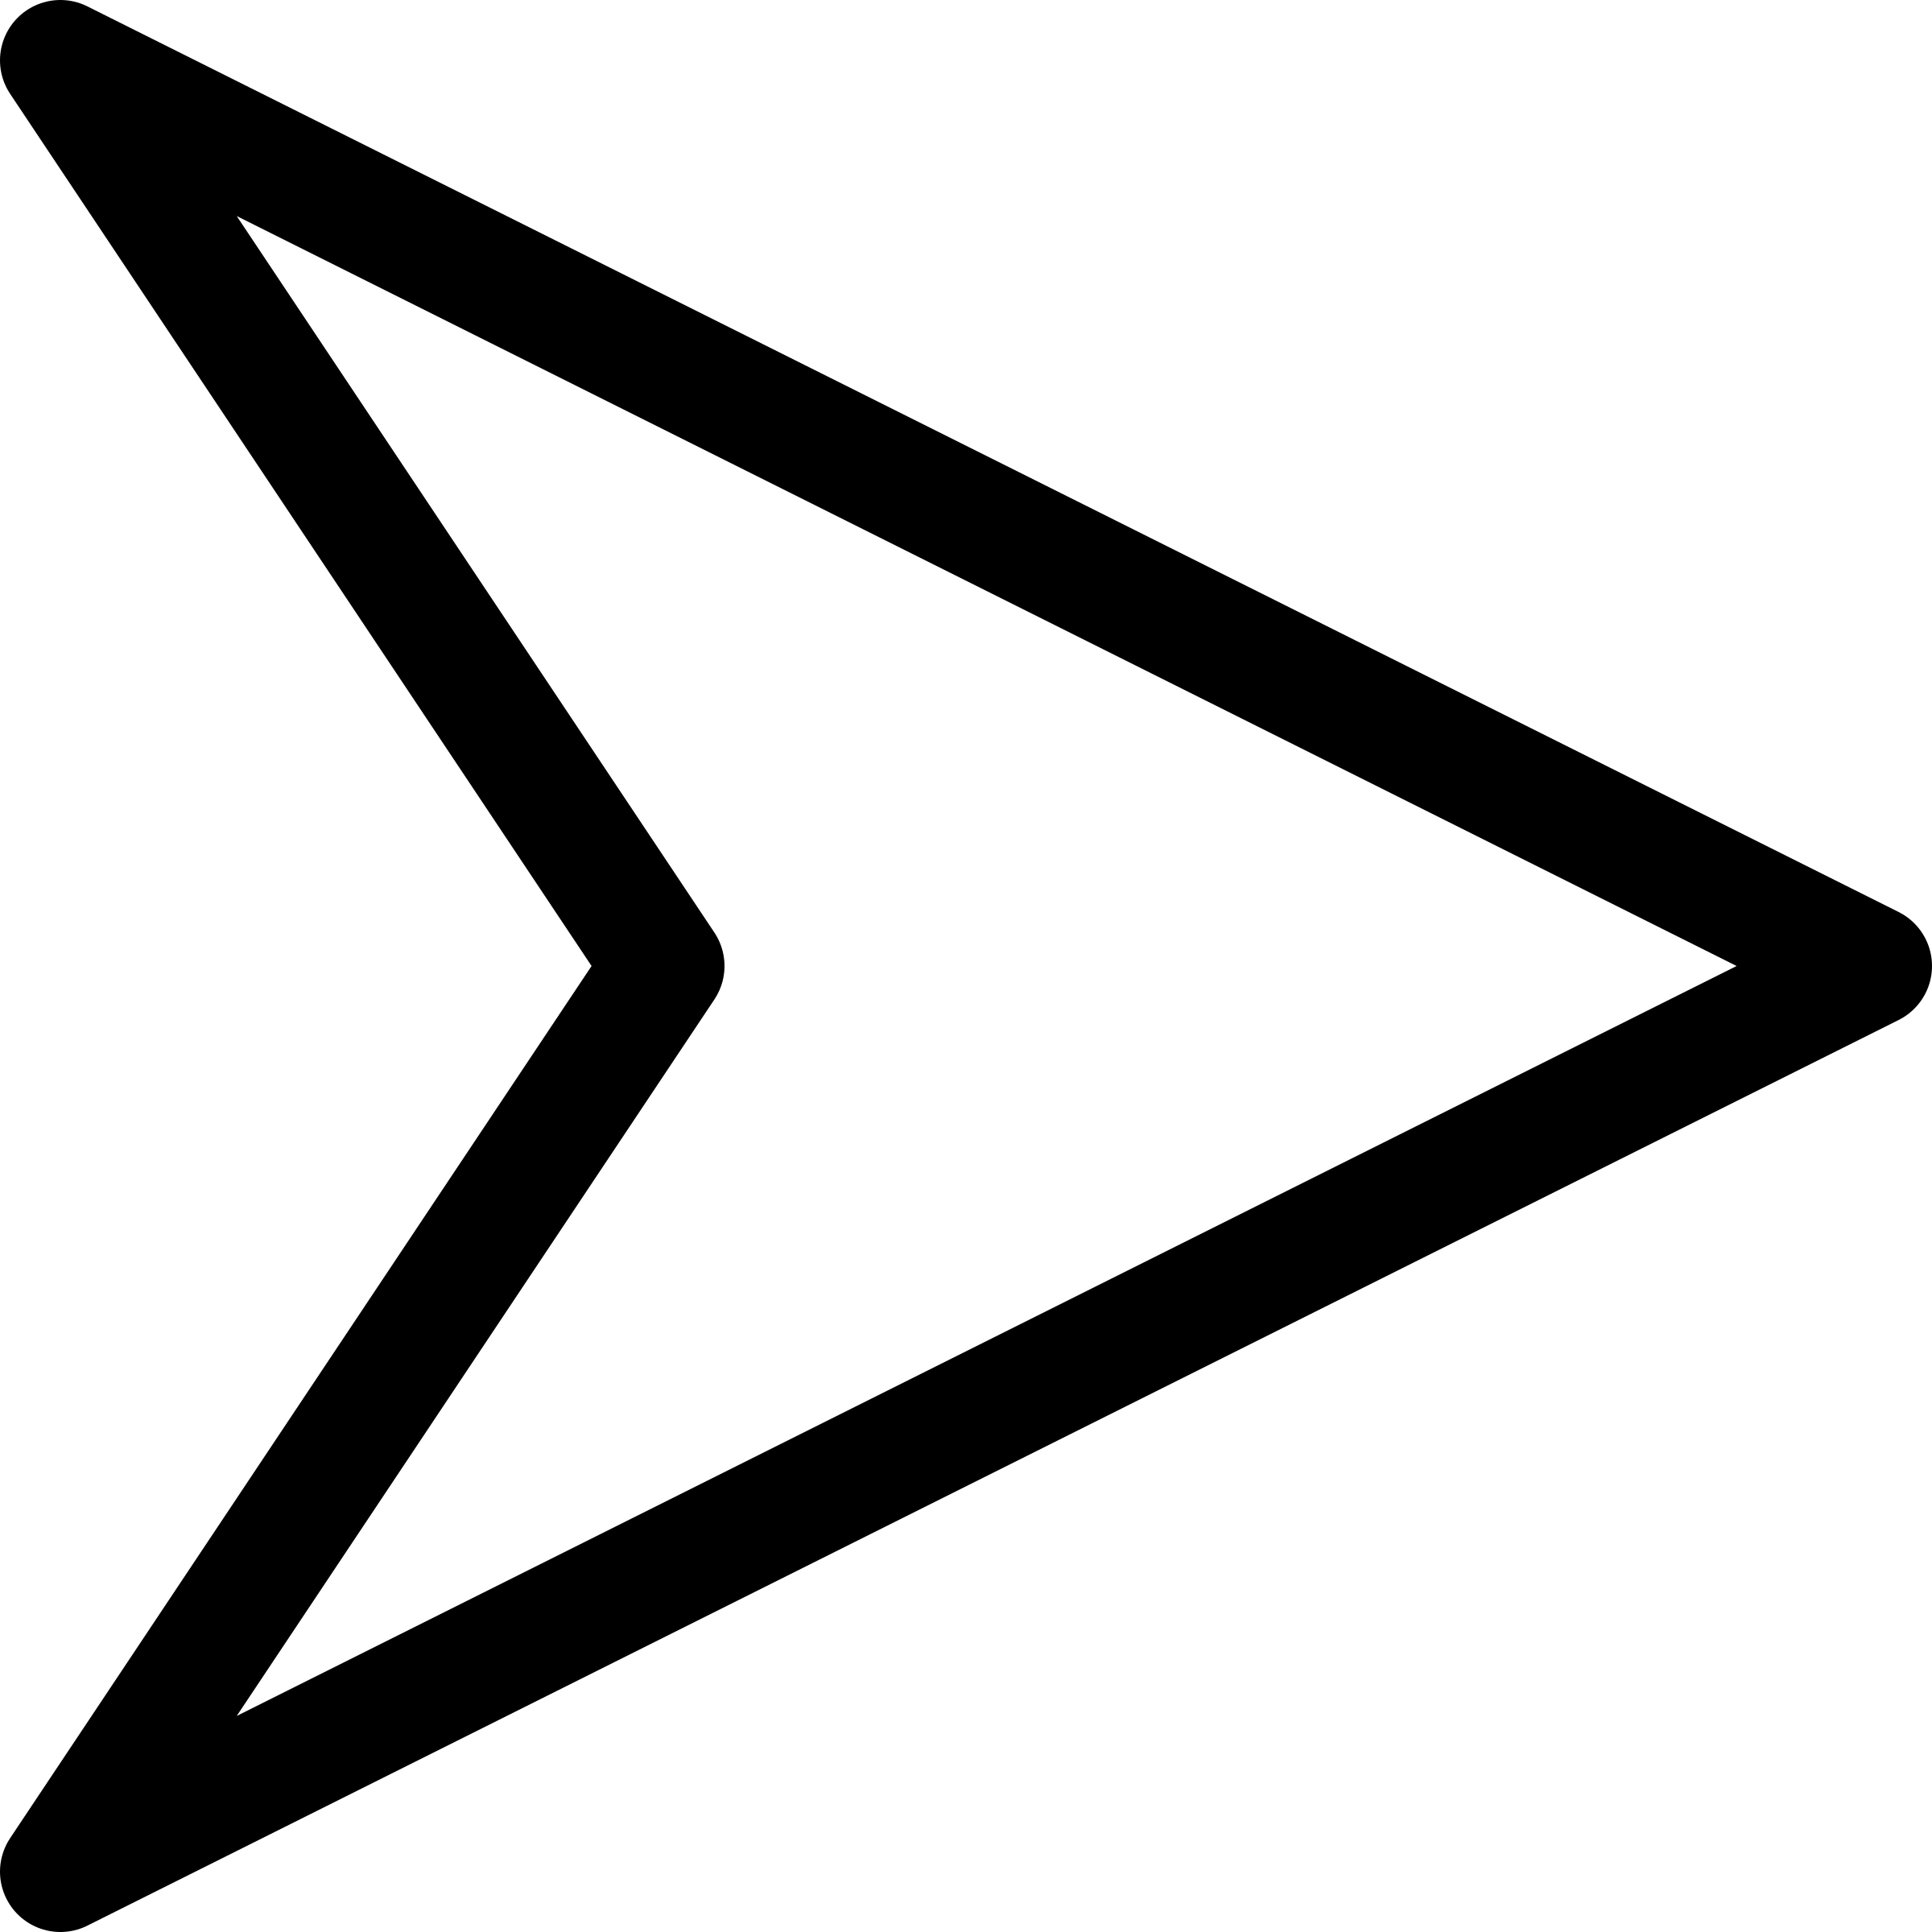 Cool arrow png. Triangle left transparent stickpng